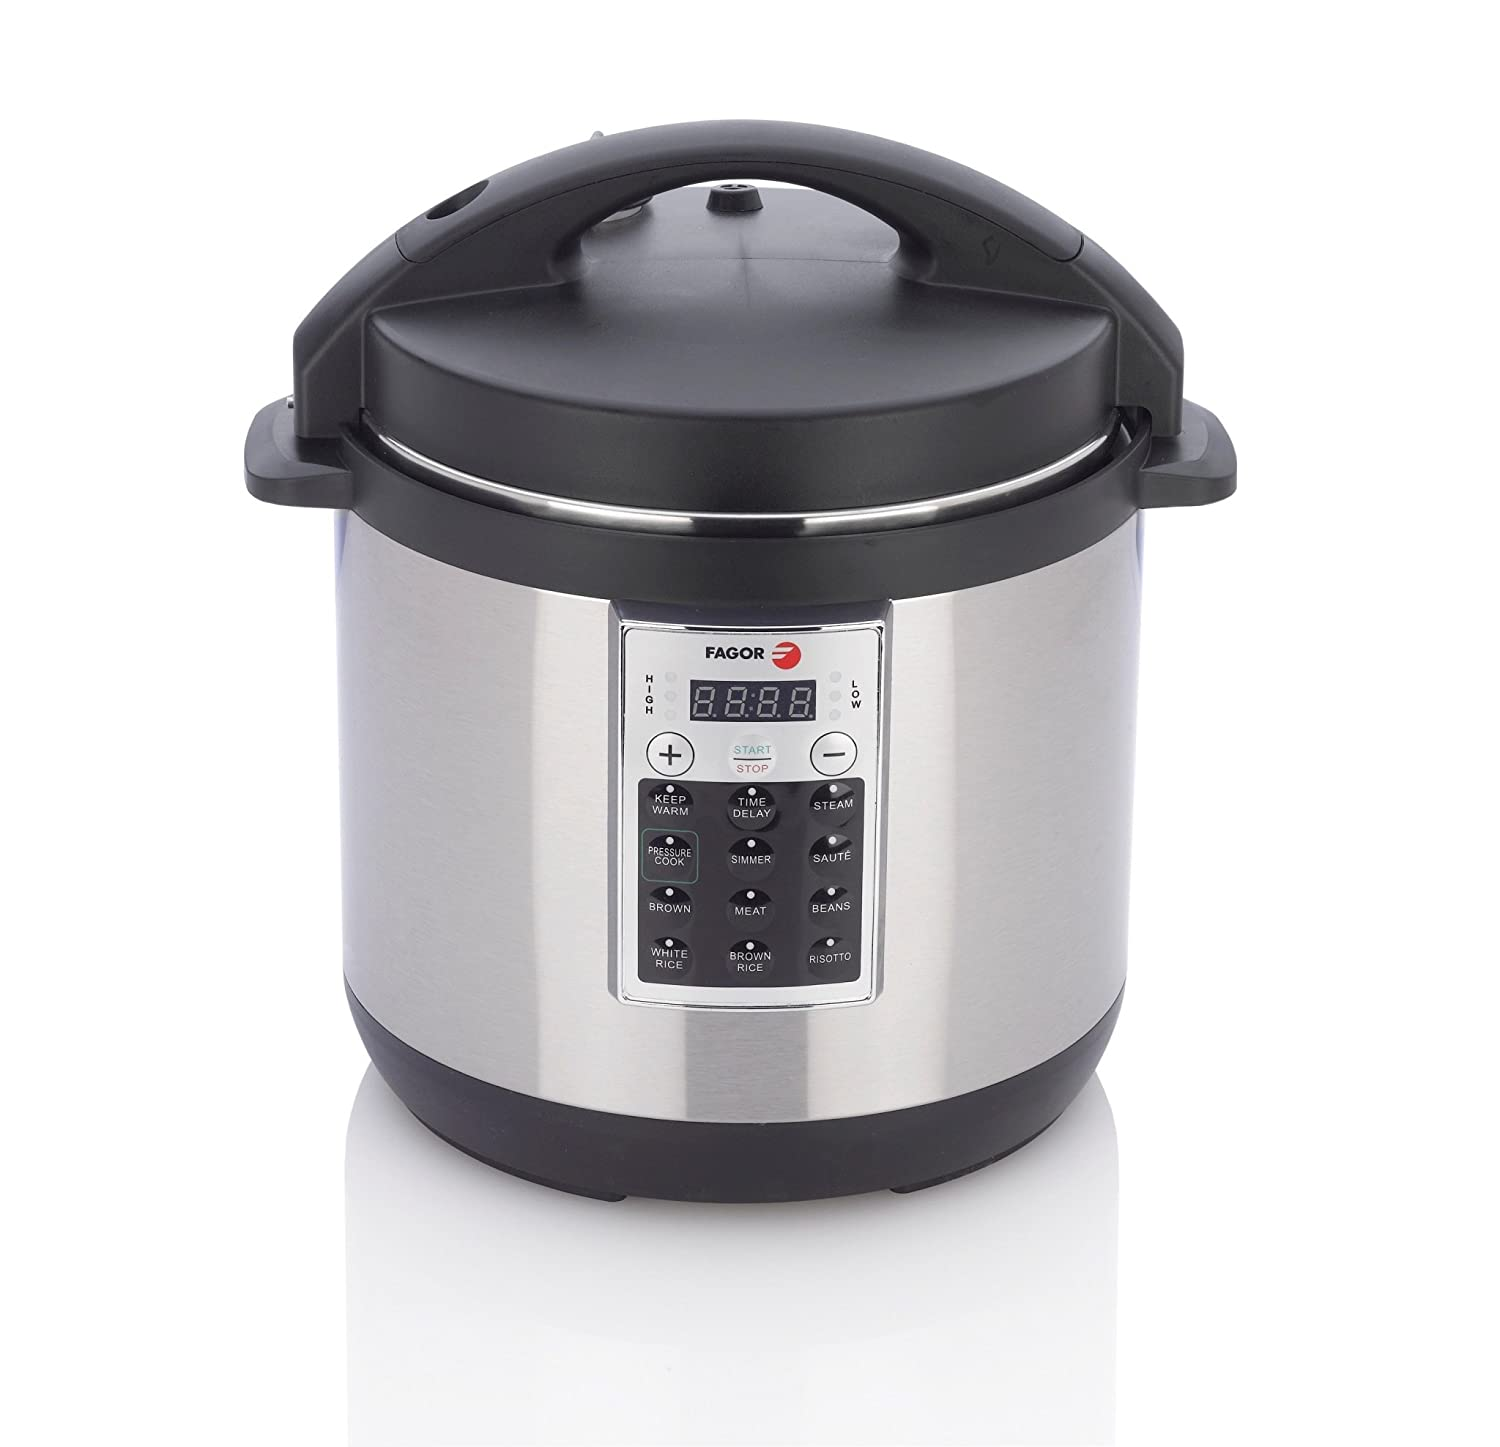 Amazon.com: Fagor 670041930 Premium Electric Pressure and Rice Cooker, 6  quart, Silver: Kitchen & Dining